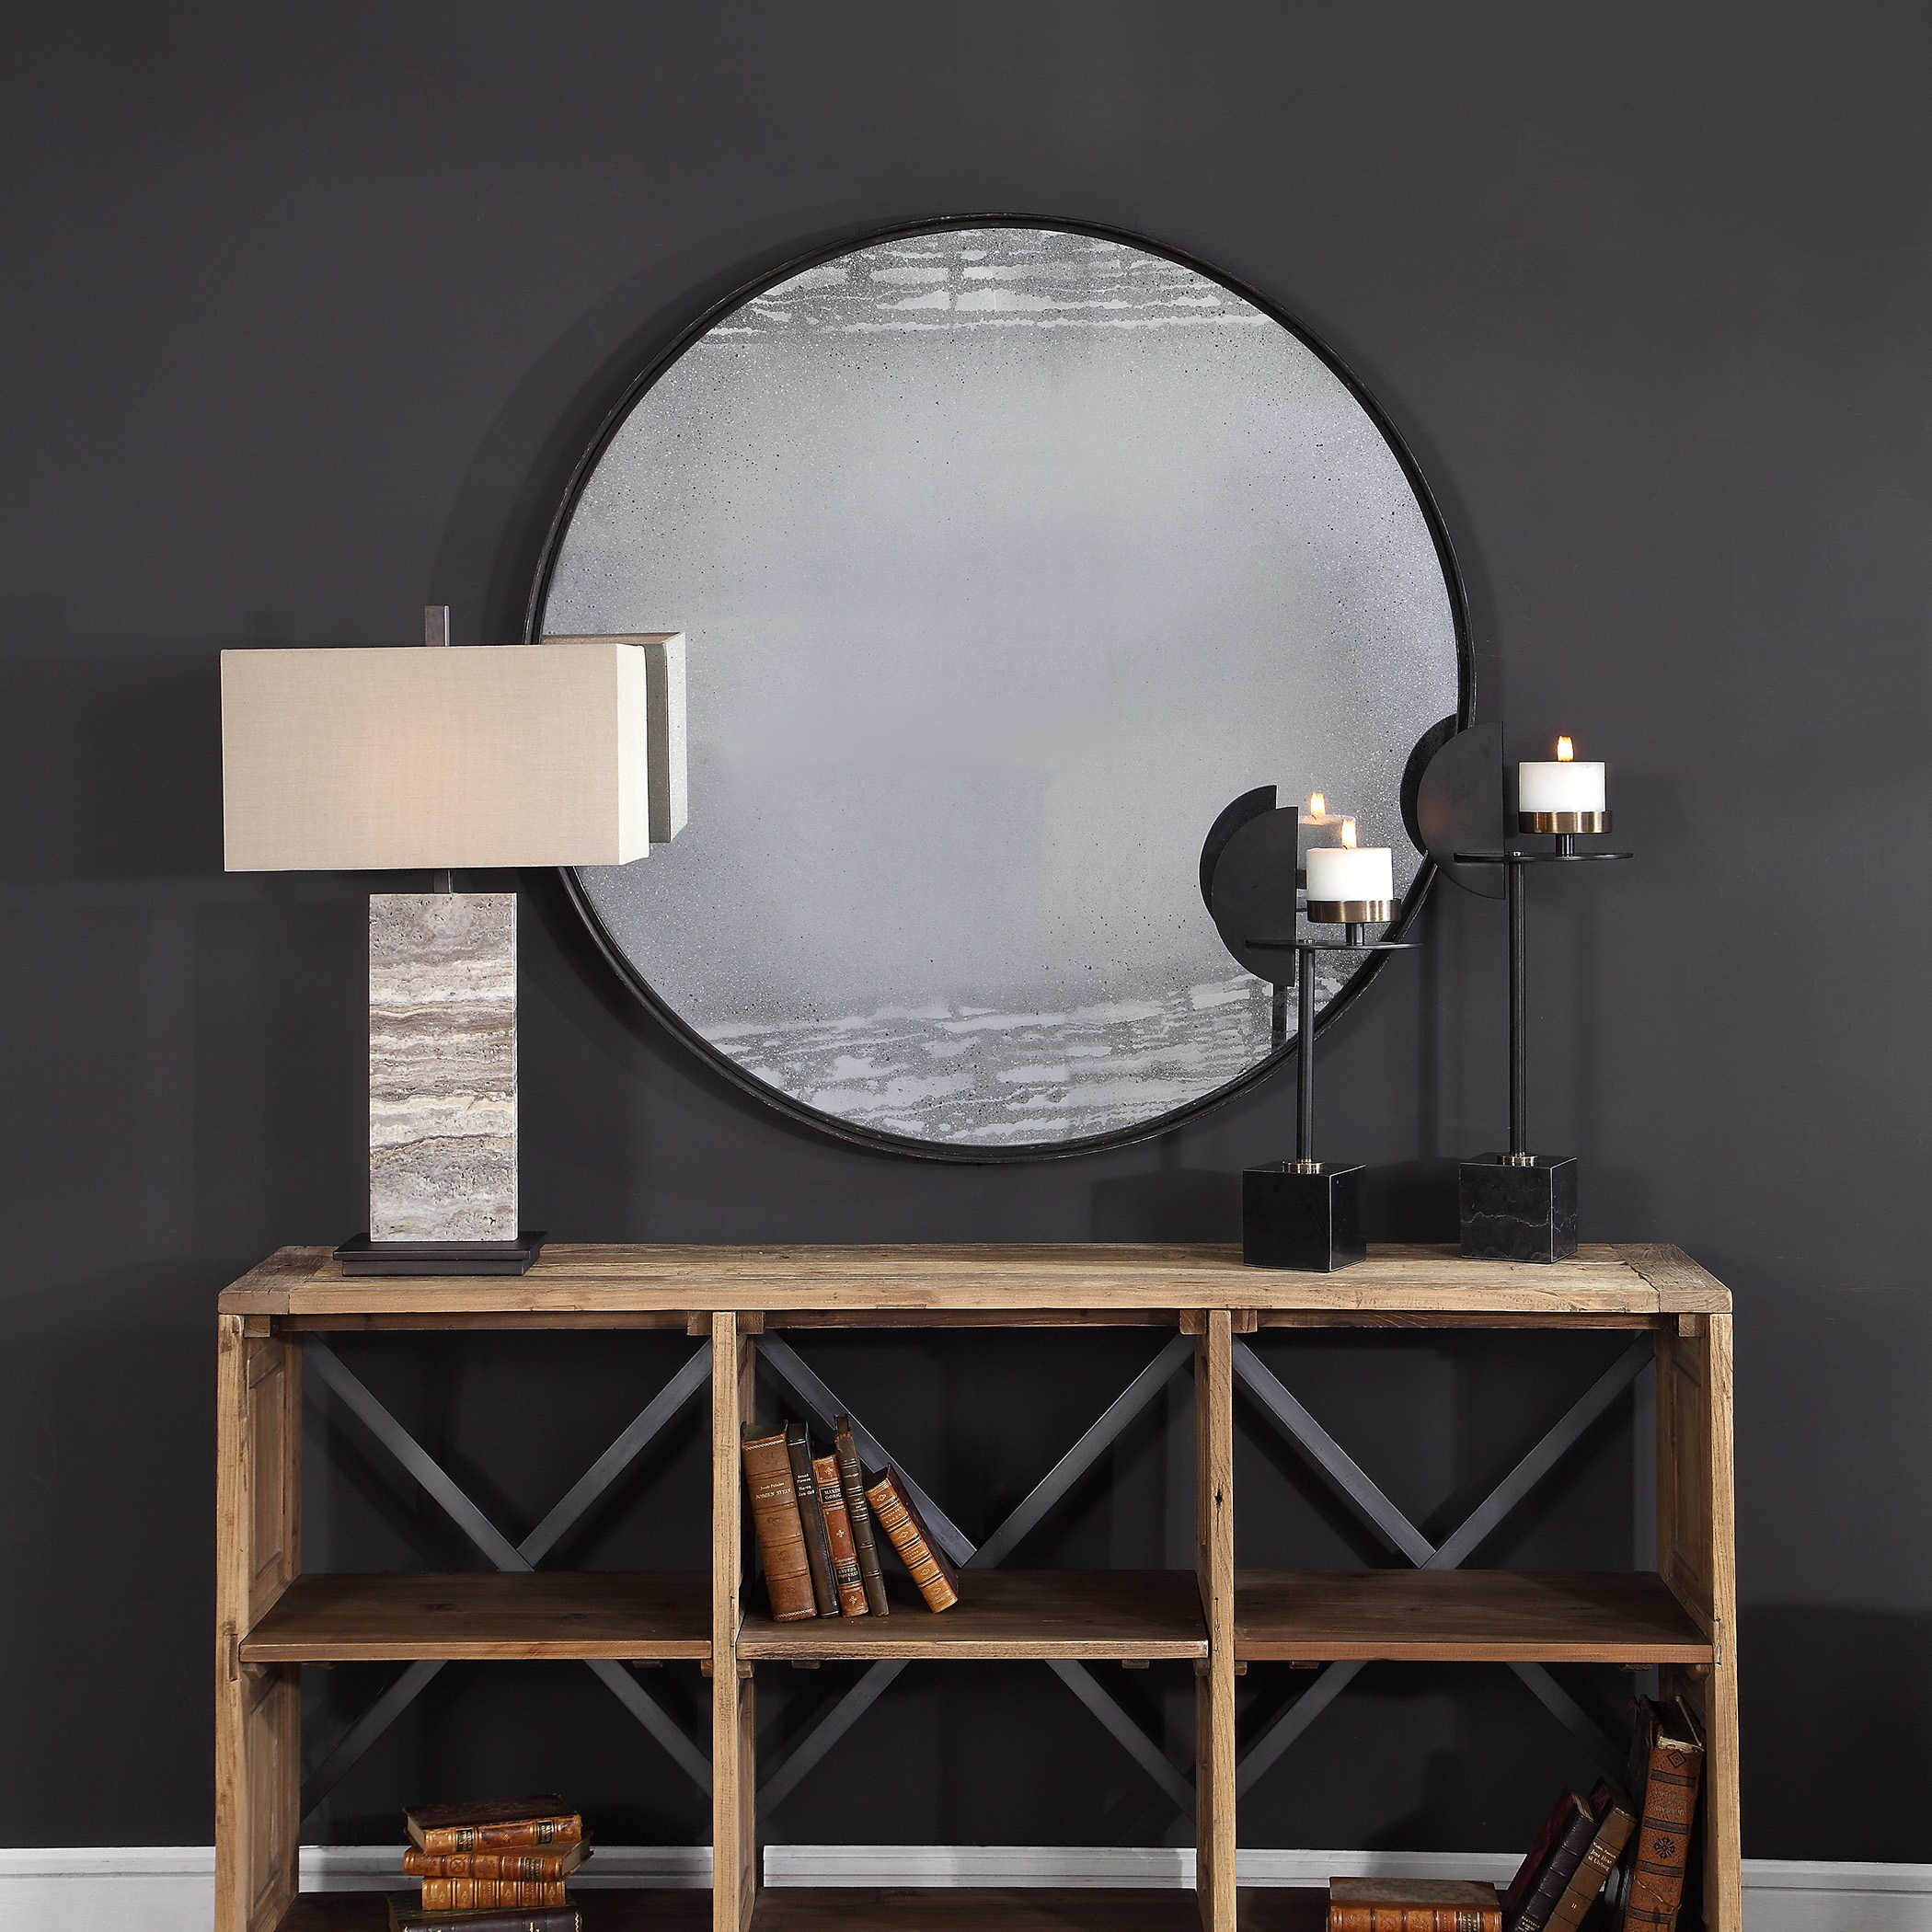 miroir rond decoration murale idee